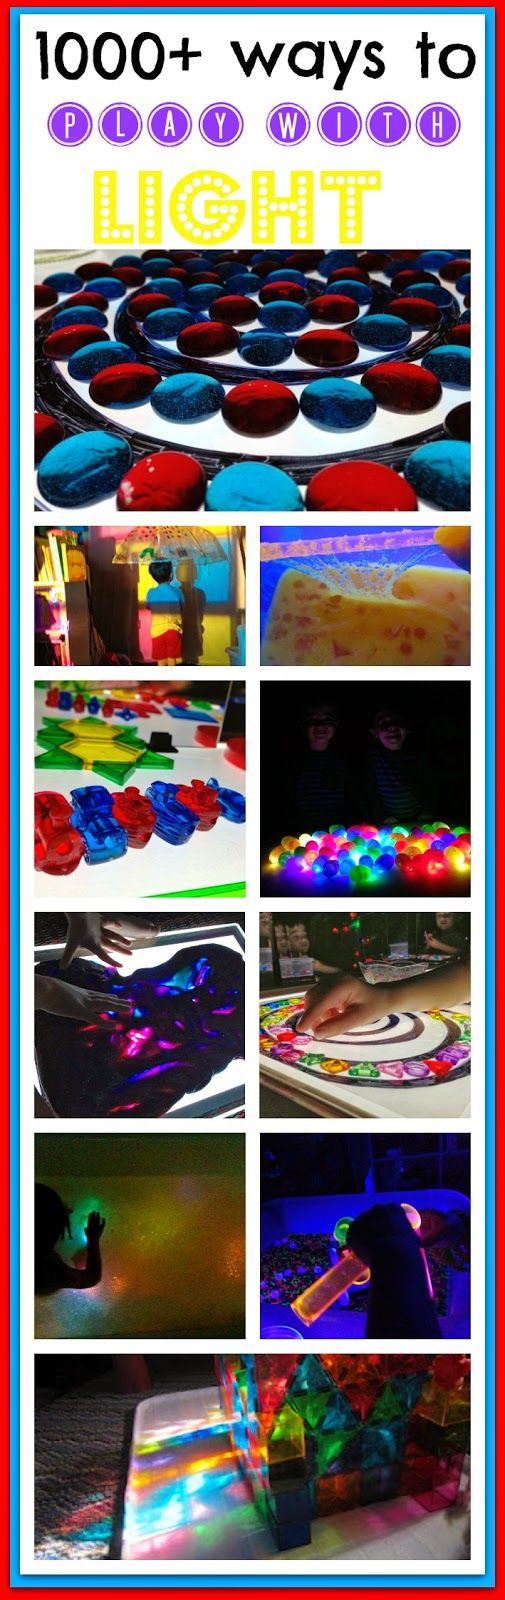 1000+ ways to play with LIGHT! Light table, overhead projector, black light, glow sticks, glow baths, LED lights, and more!